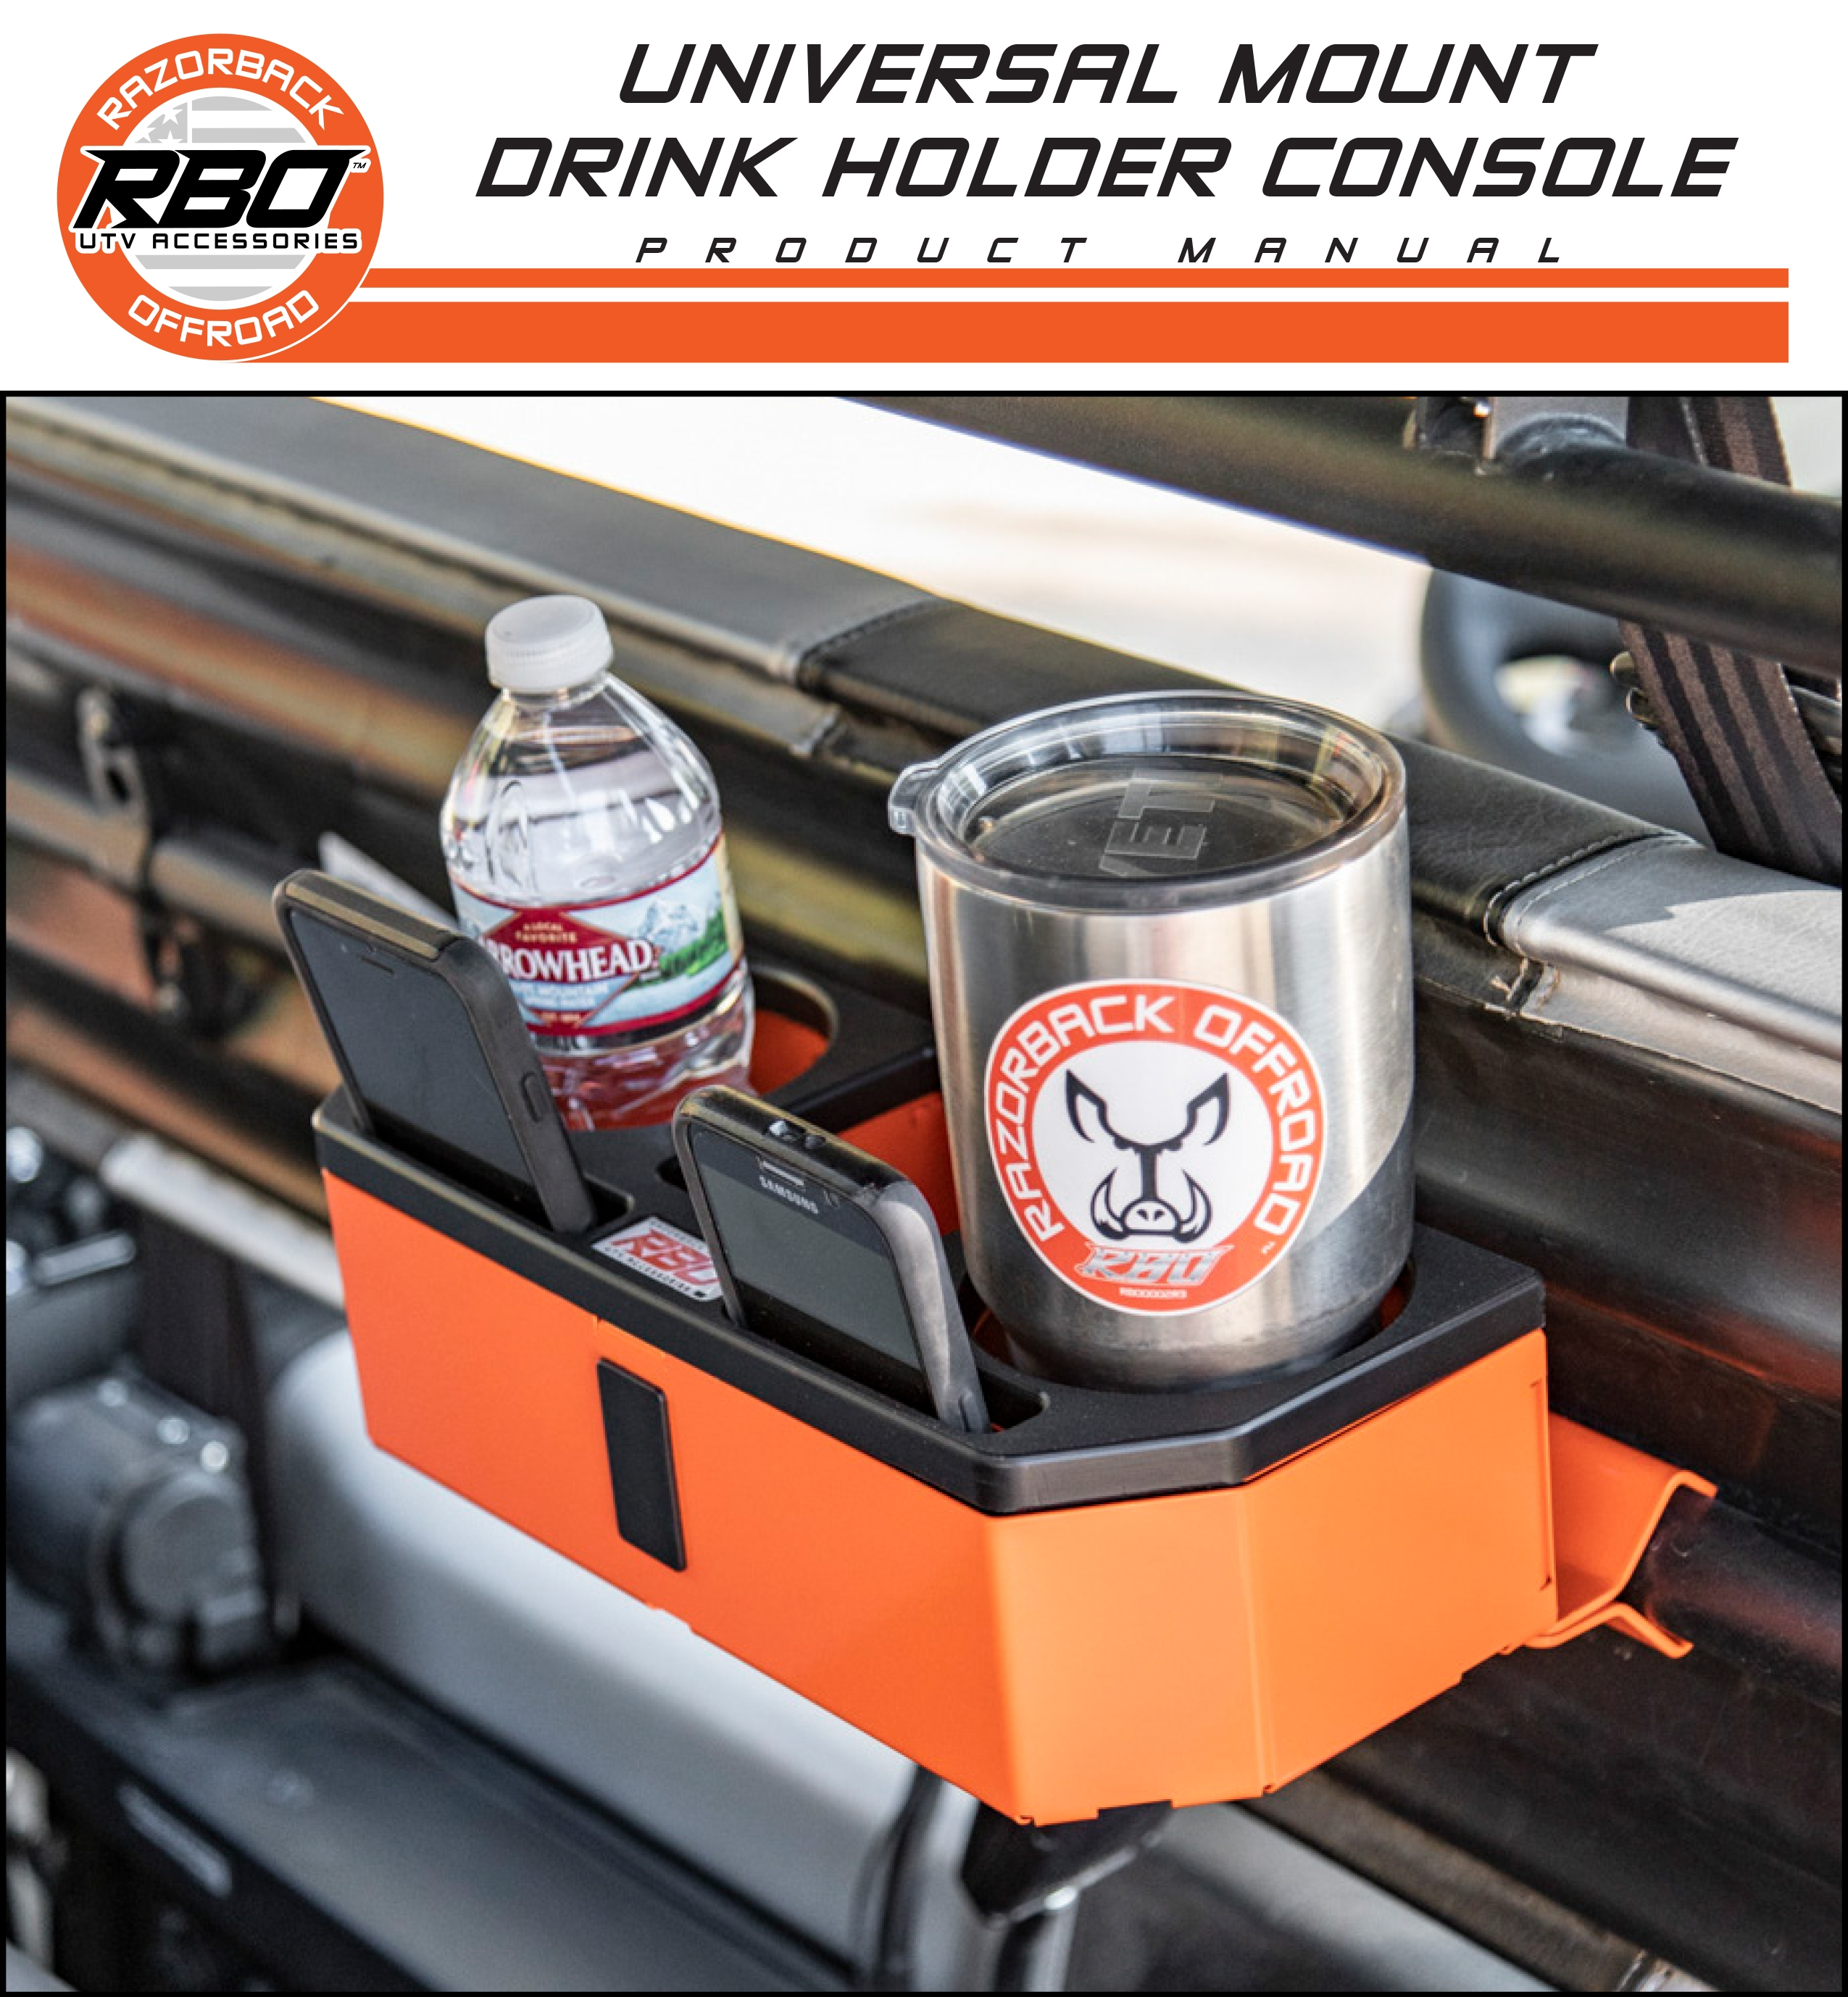 RBO Universal Mount Drink Holder Console Product Manual